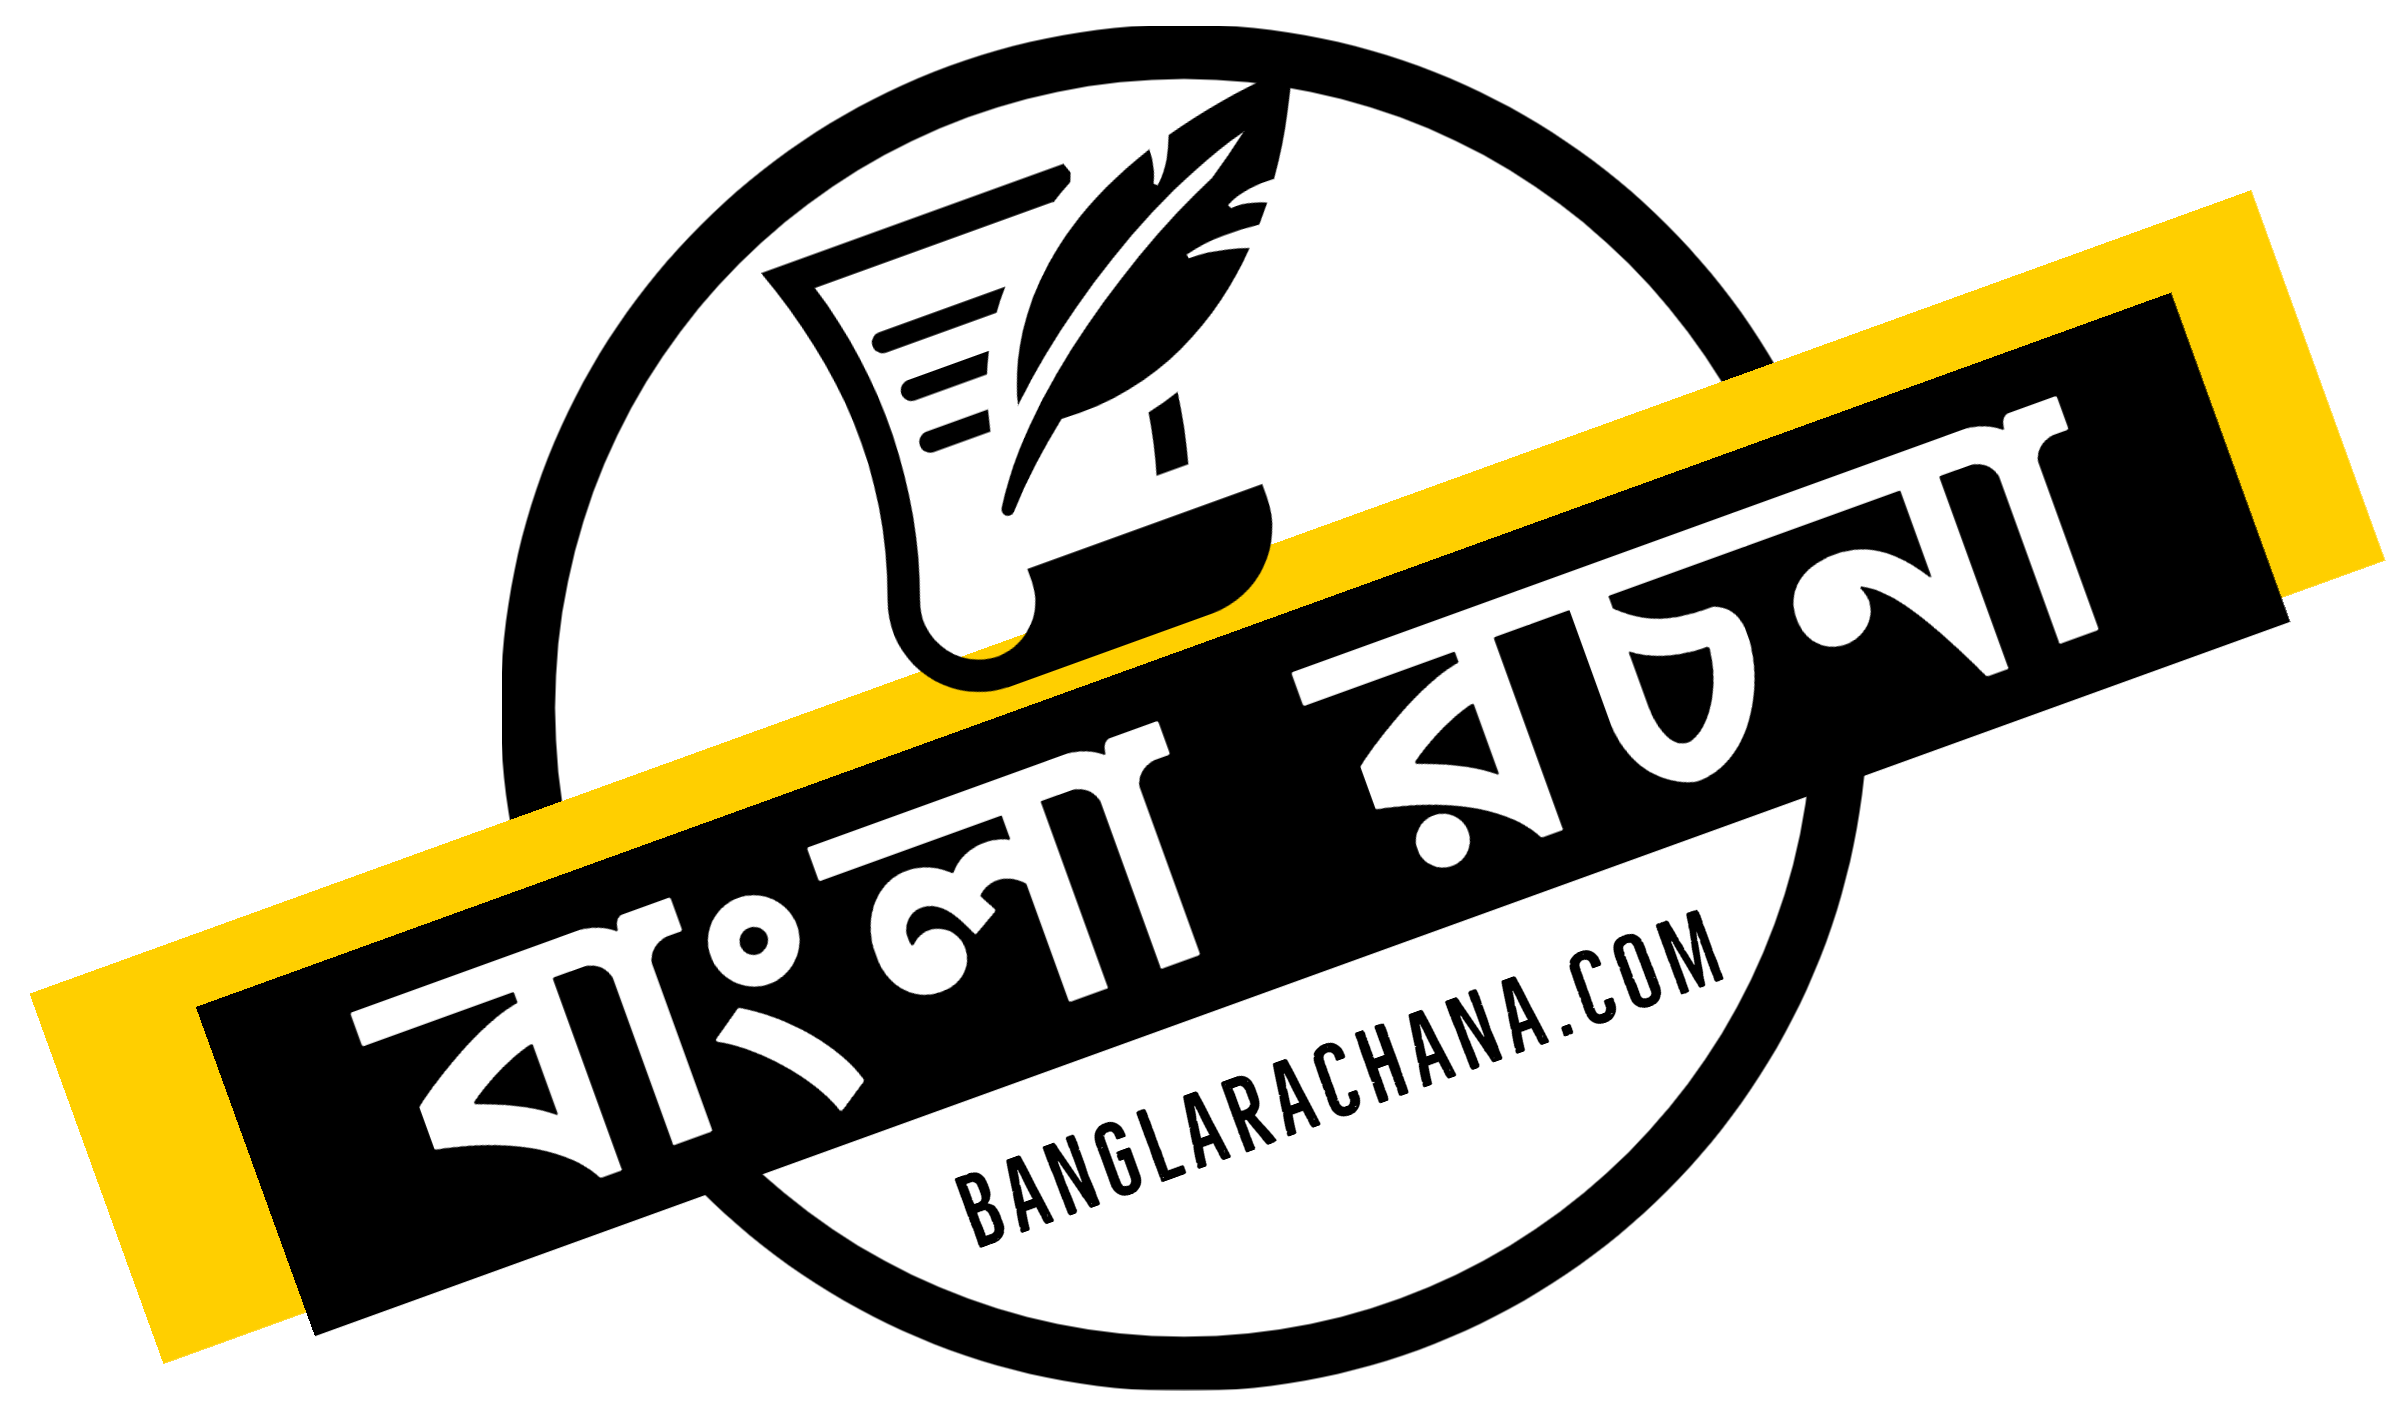 New logo of Bangla Rachana